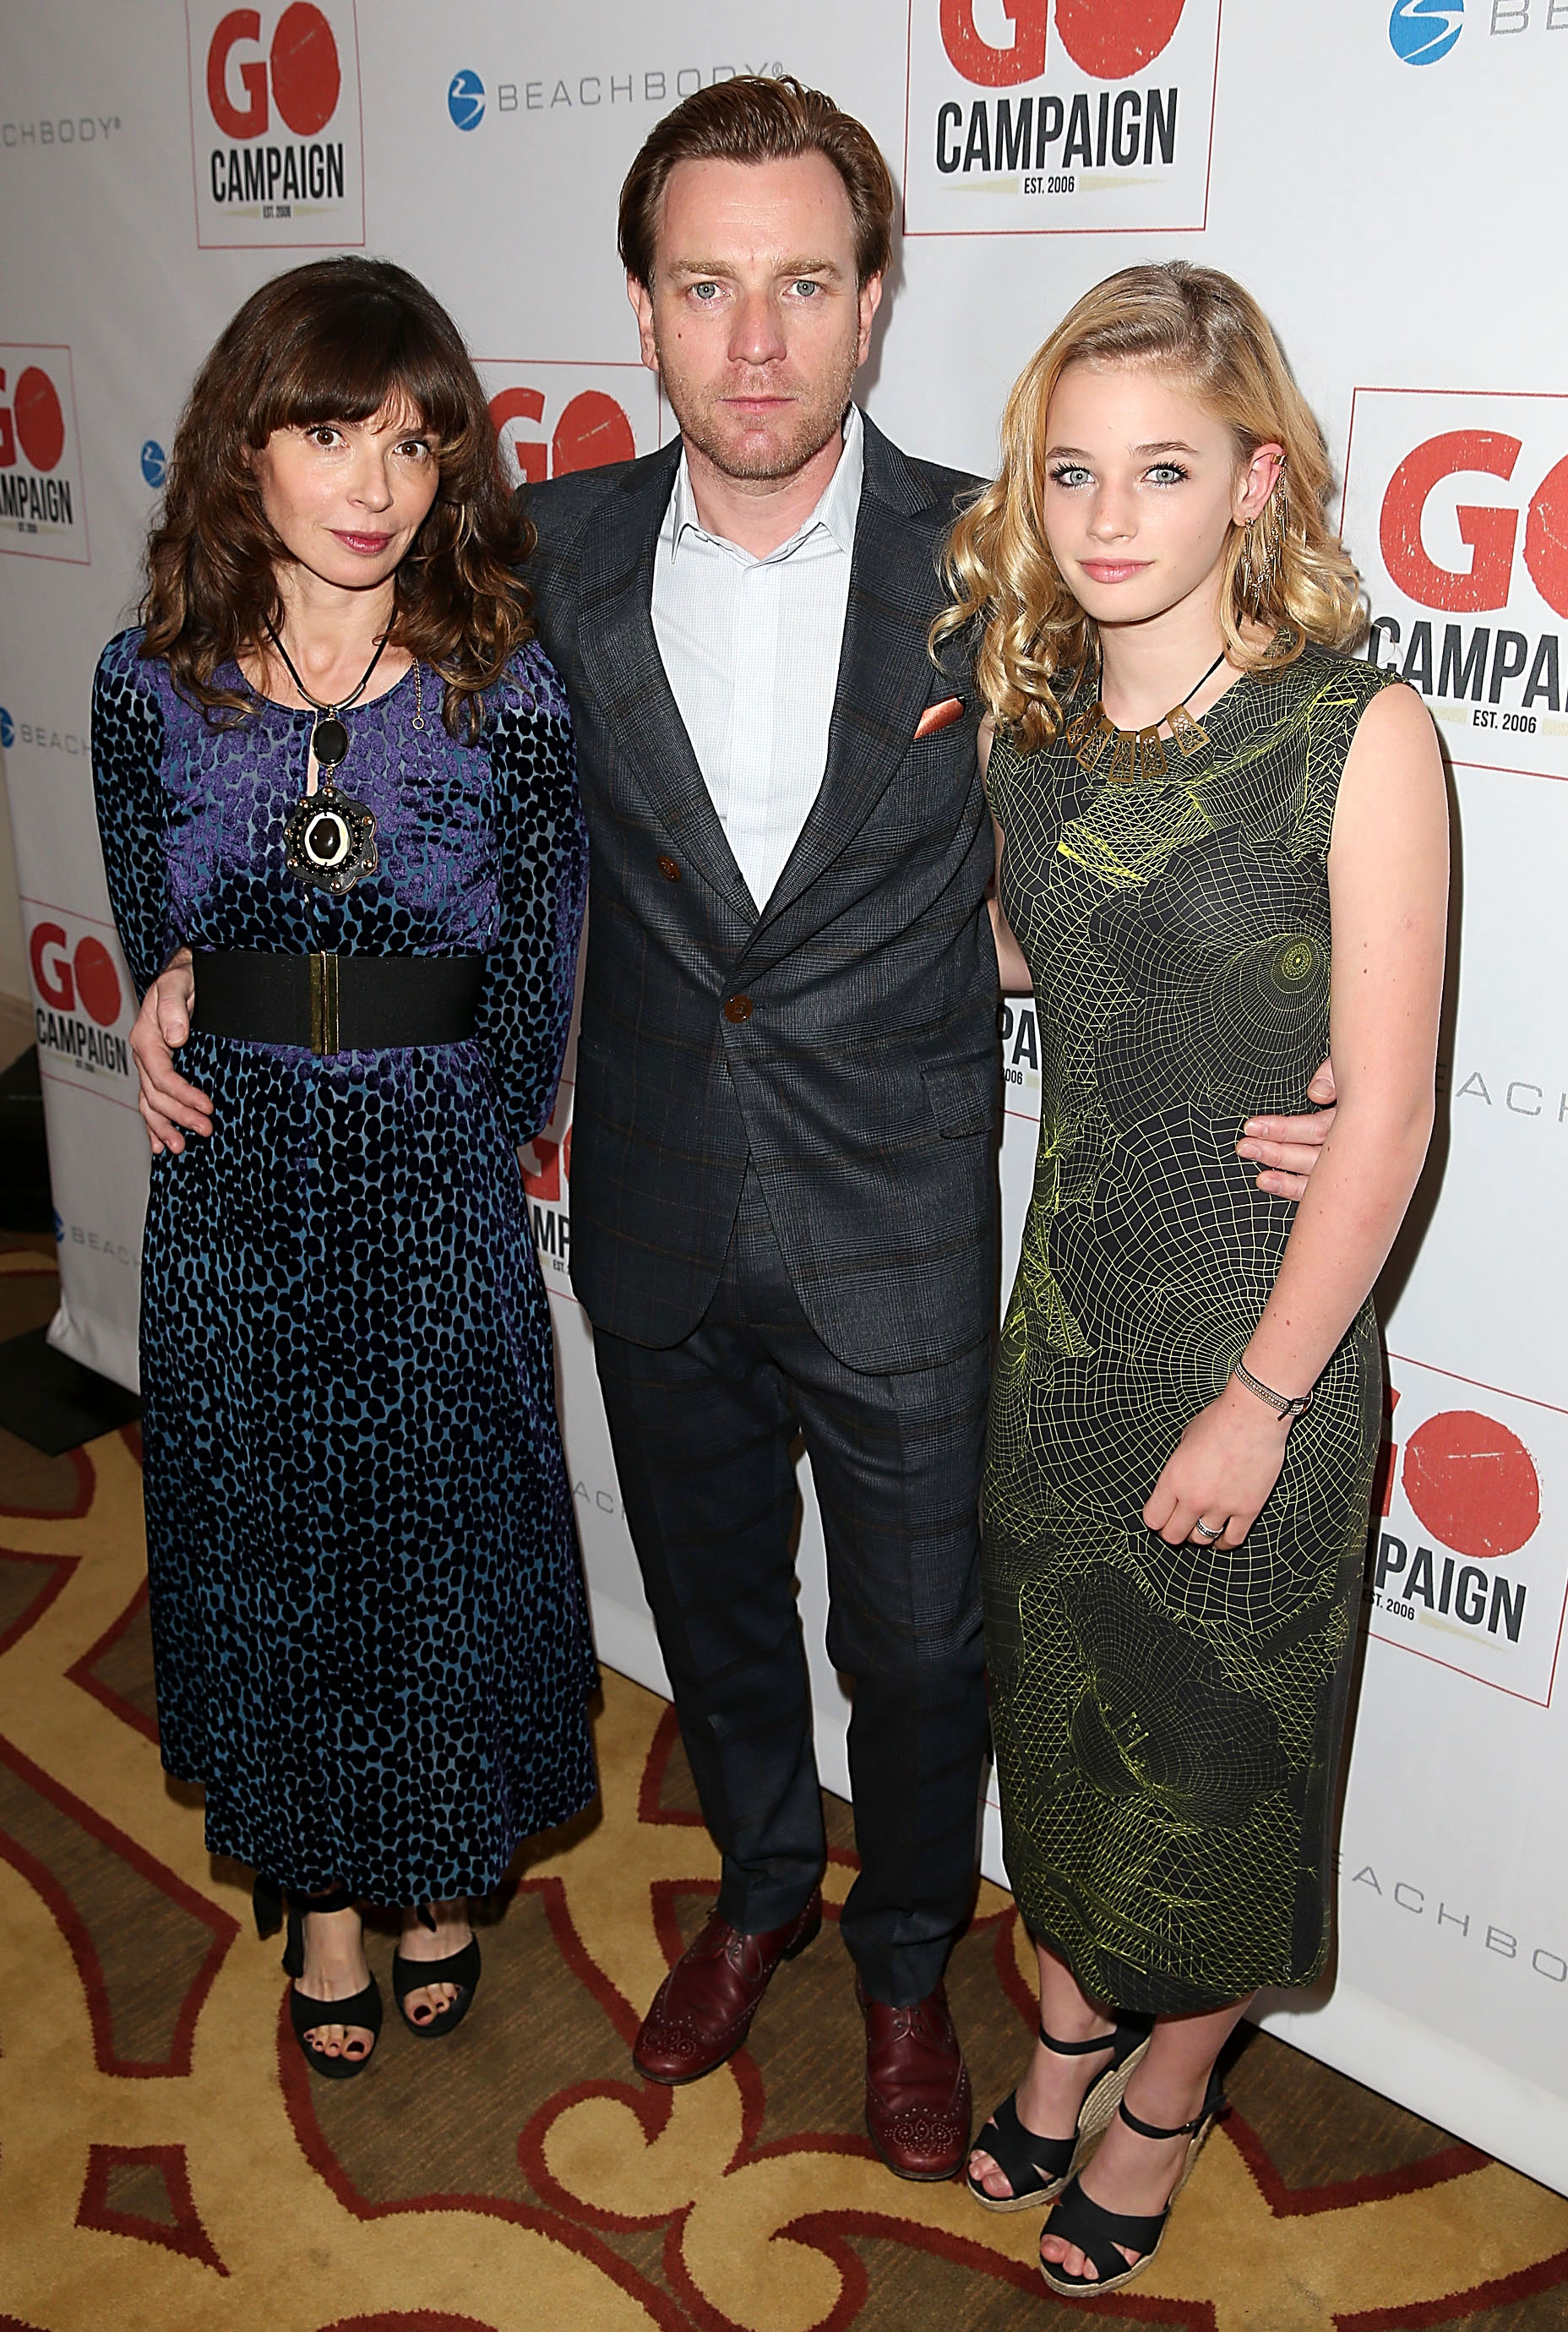 Clara McGregor nudes (57 photo), Topless, Is a cute, Boobs, butt 2006